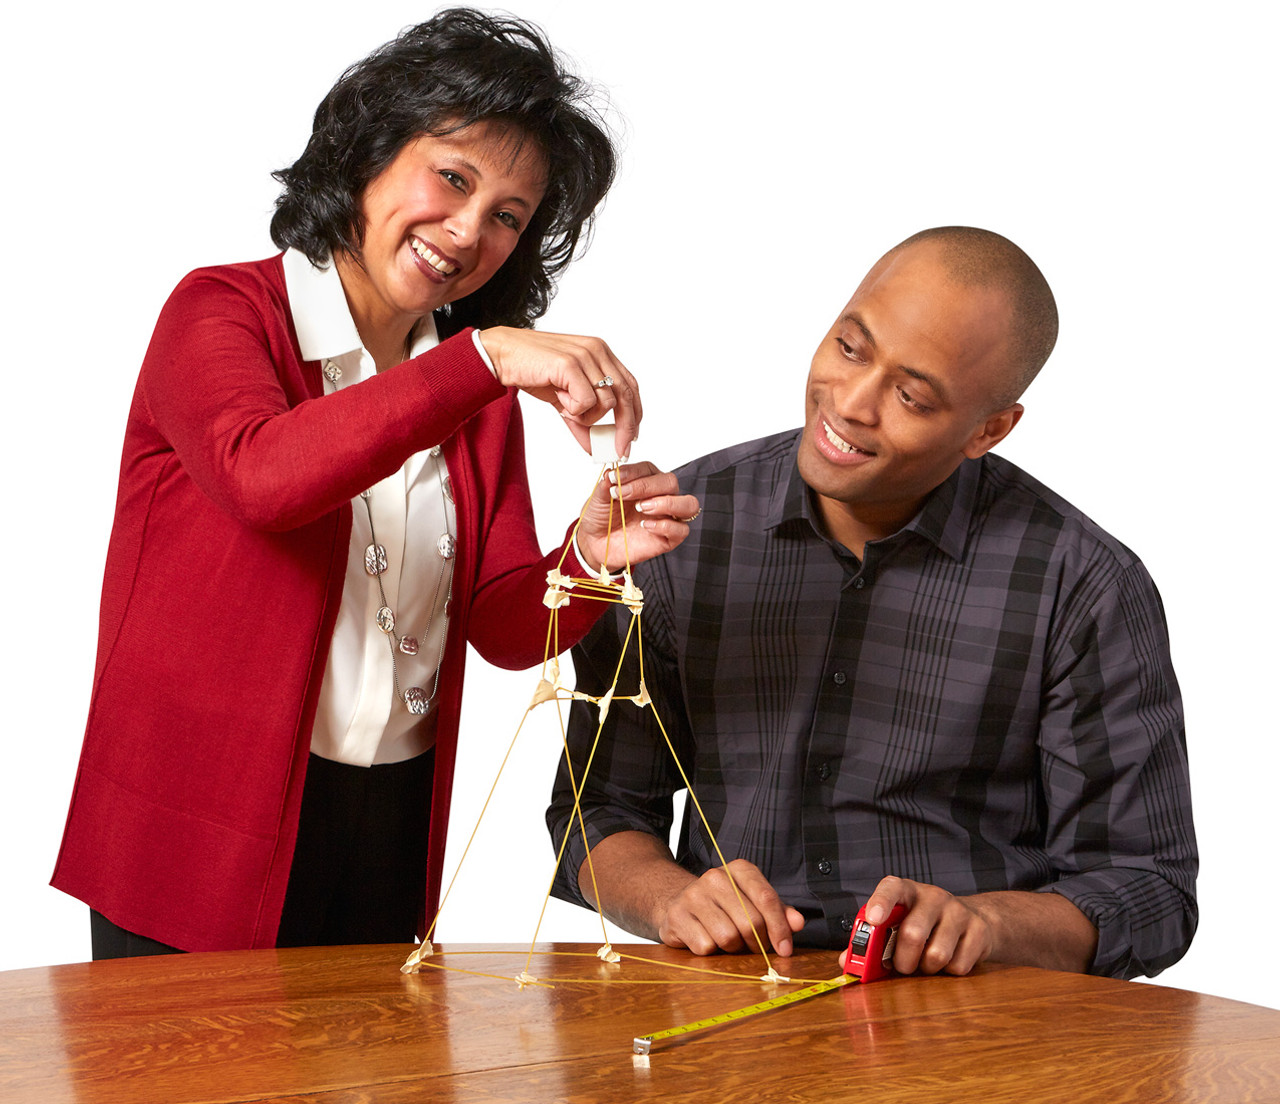 Marshmallow Challenge; players building tower